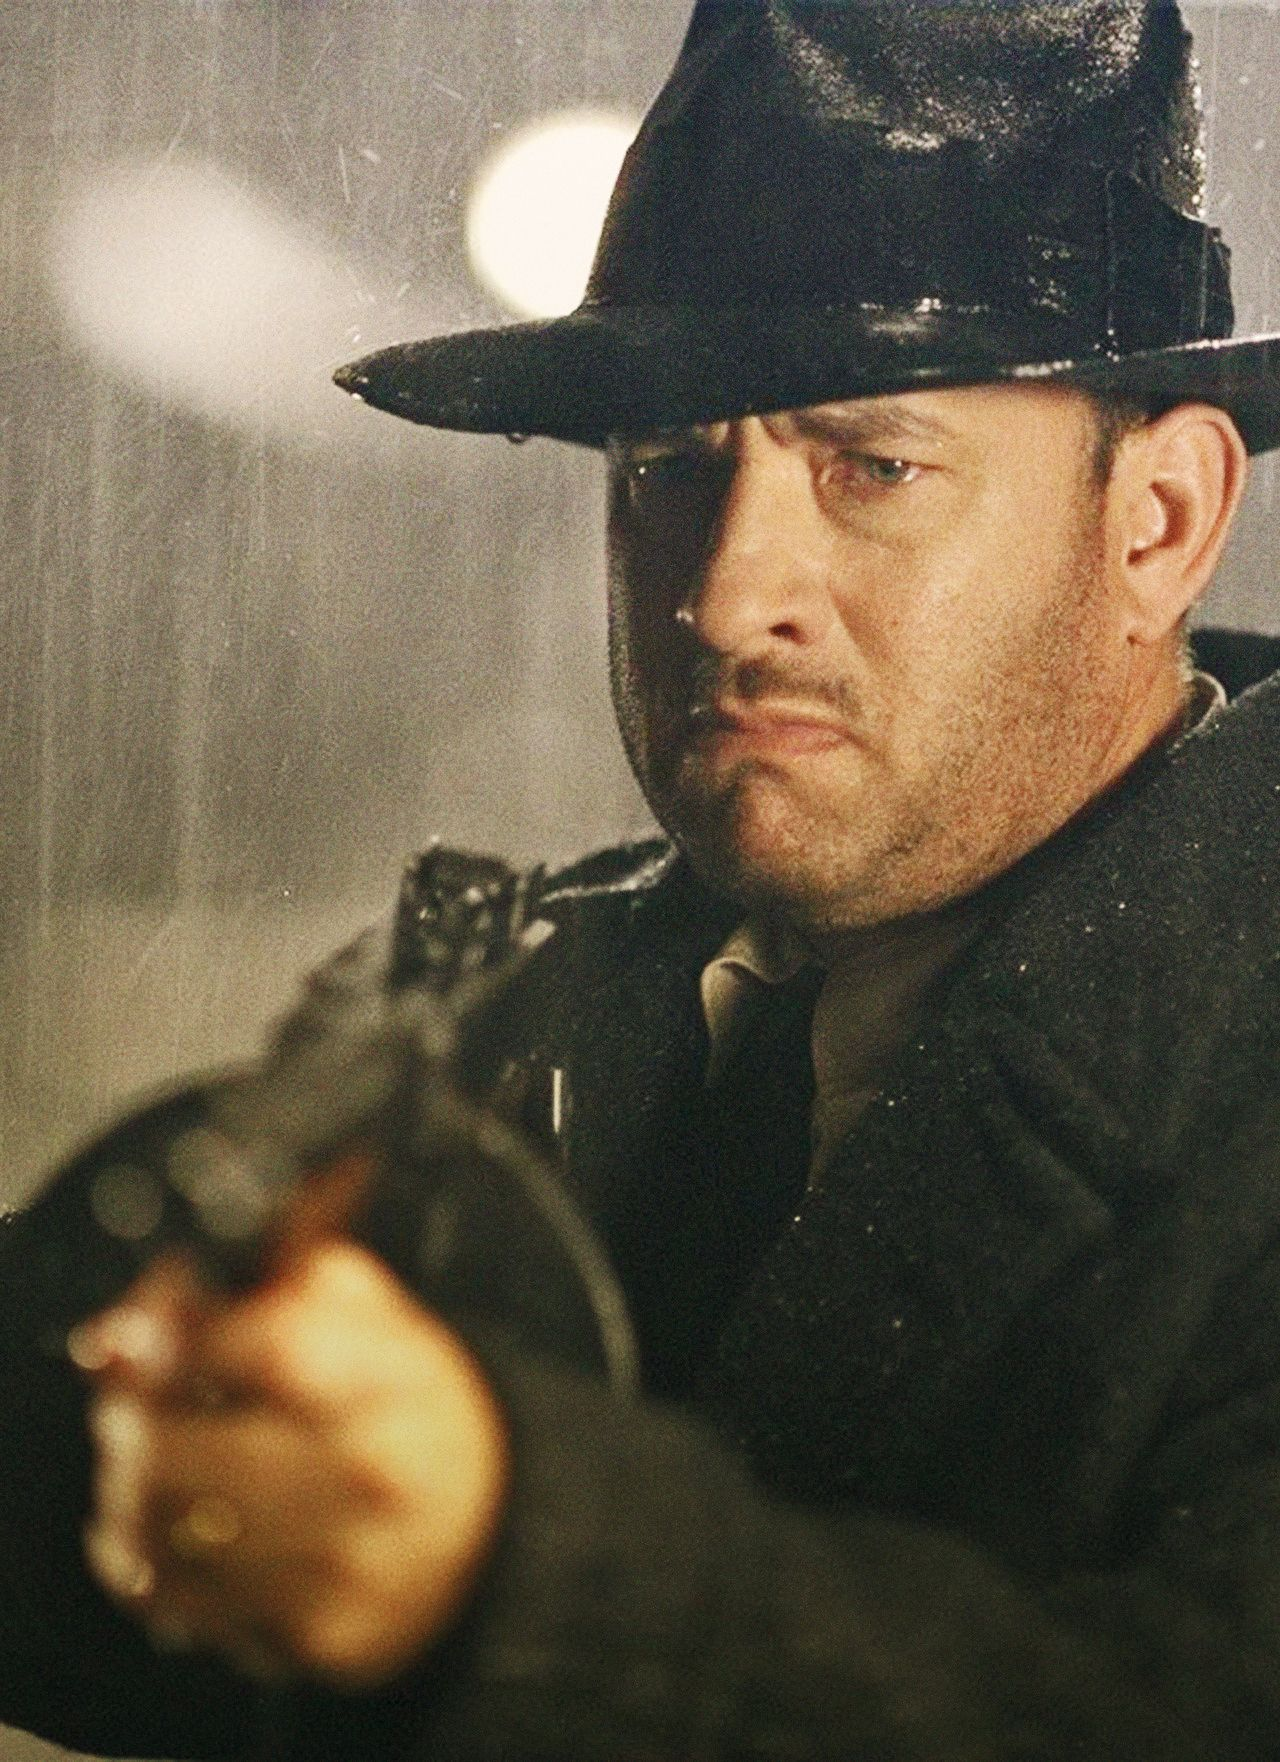 Tom Hanks As Michael Sullivan In Road To Perdition My Favourite Gangster Film Ever I Love The Father An Action Movies To Watch Tom Hanks Best Action Movies